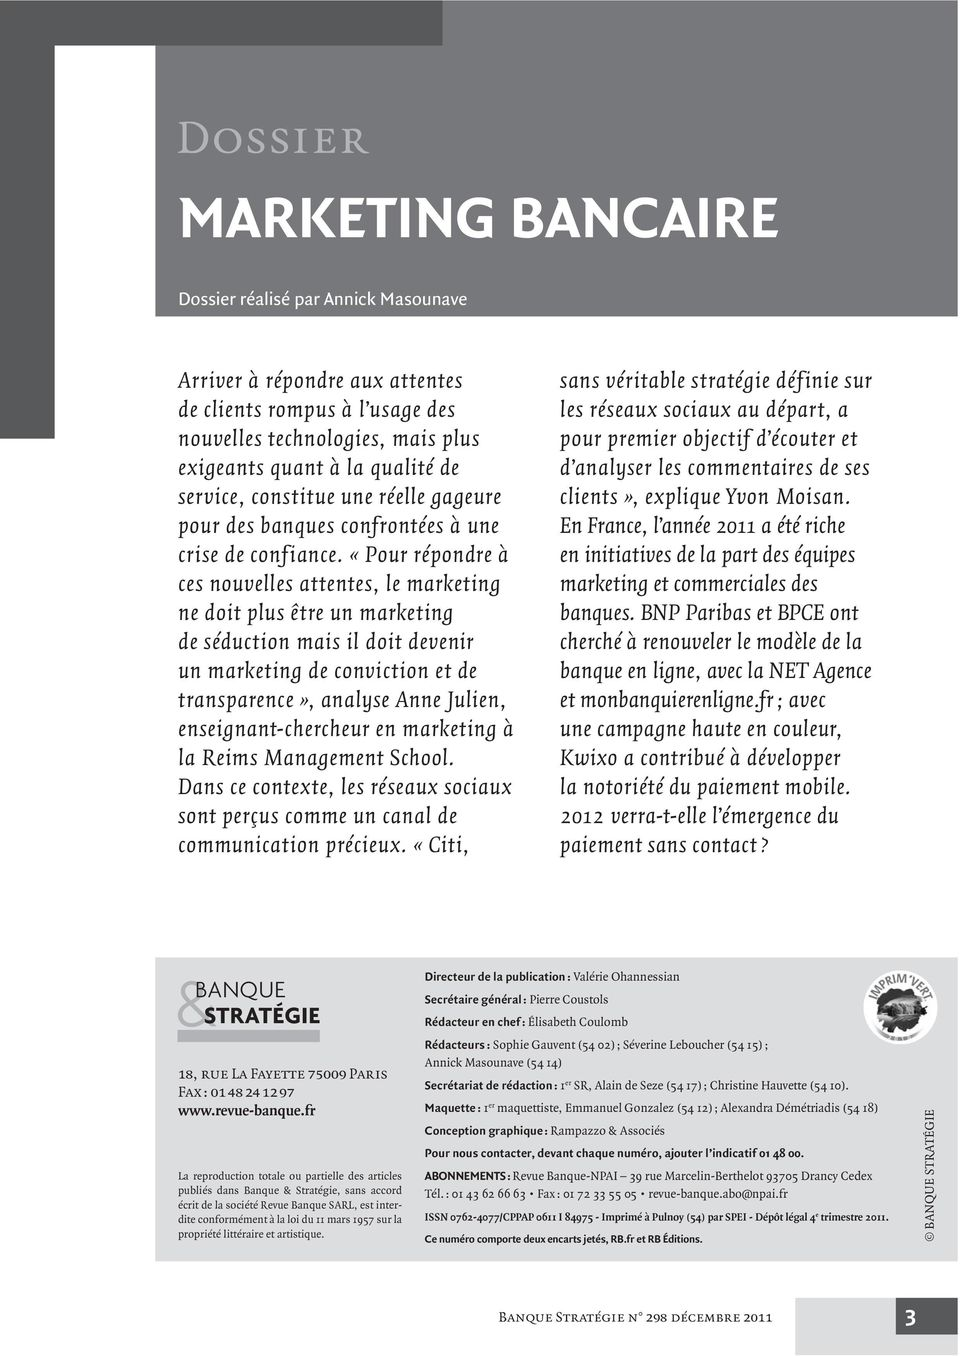 «Pour répondre à ces nouvelles attentes, le marketing ne doit plus être un marketing de séduction mais il doit devenir un marketing de conviction et de transparence», analyse Anne Julien,